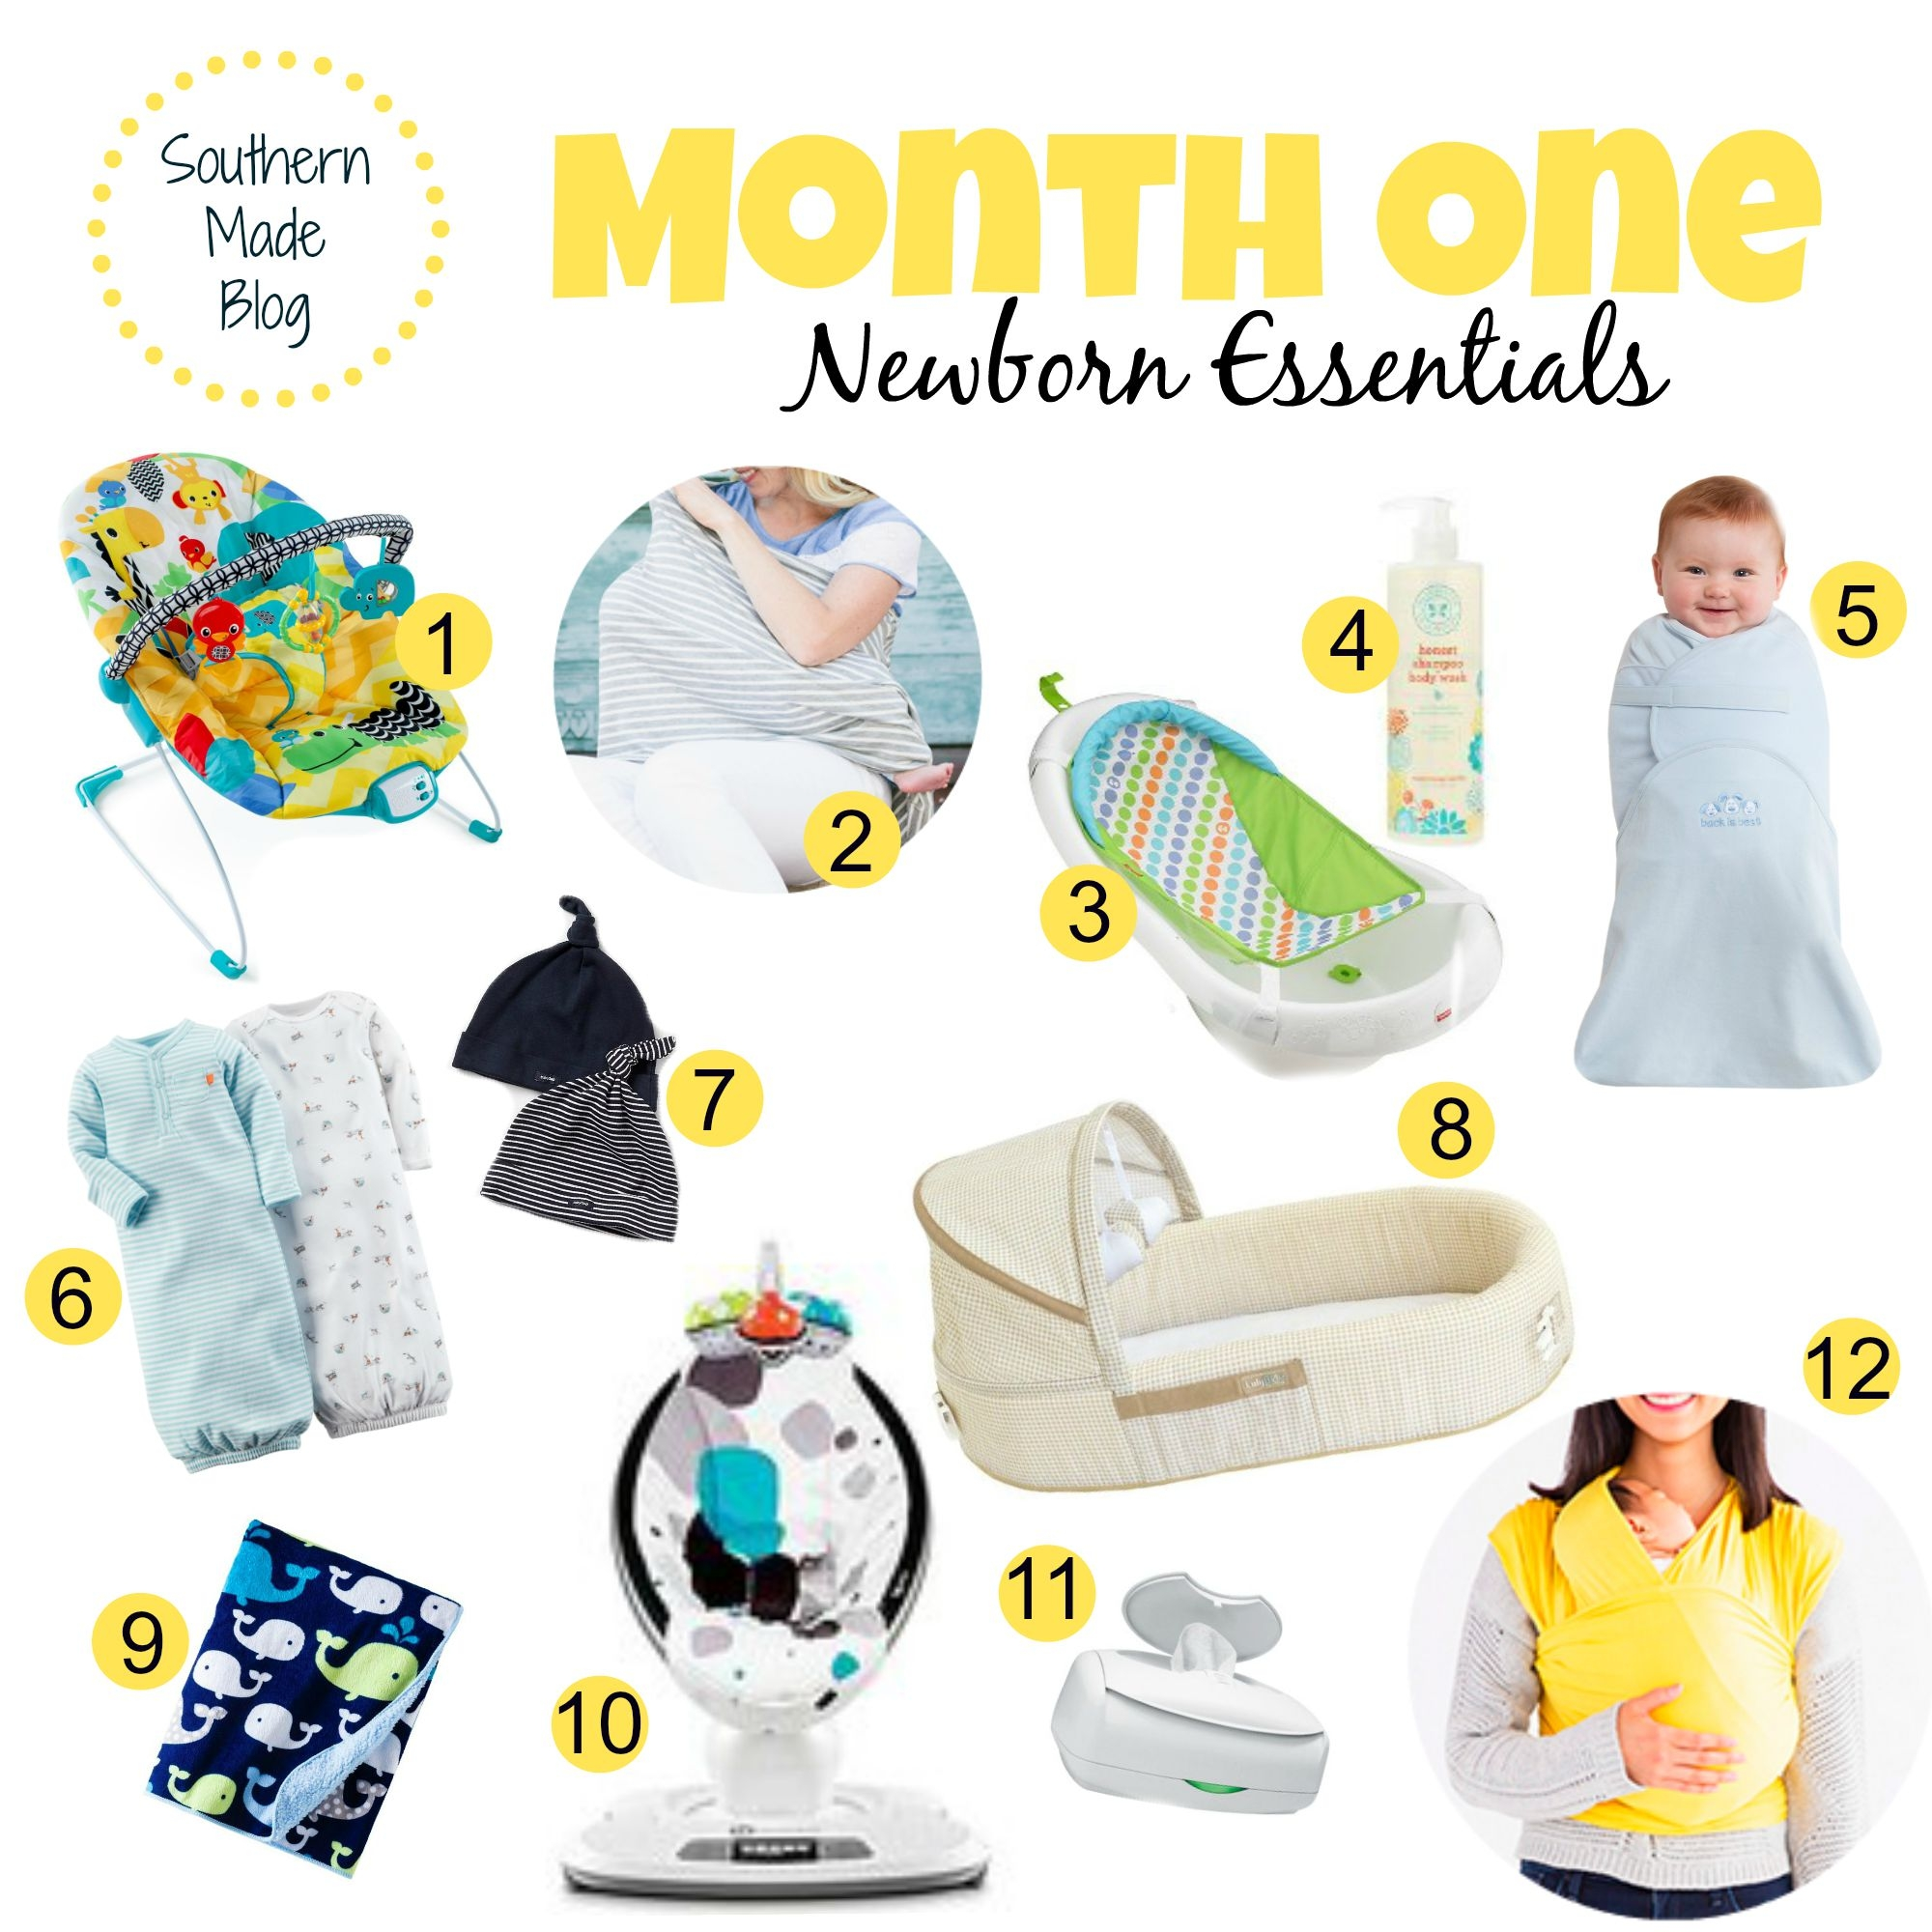 Southern Made Blog - Month One Newborn Essentials